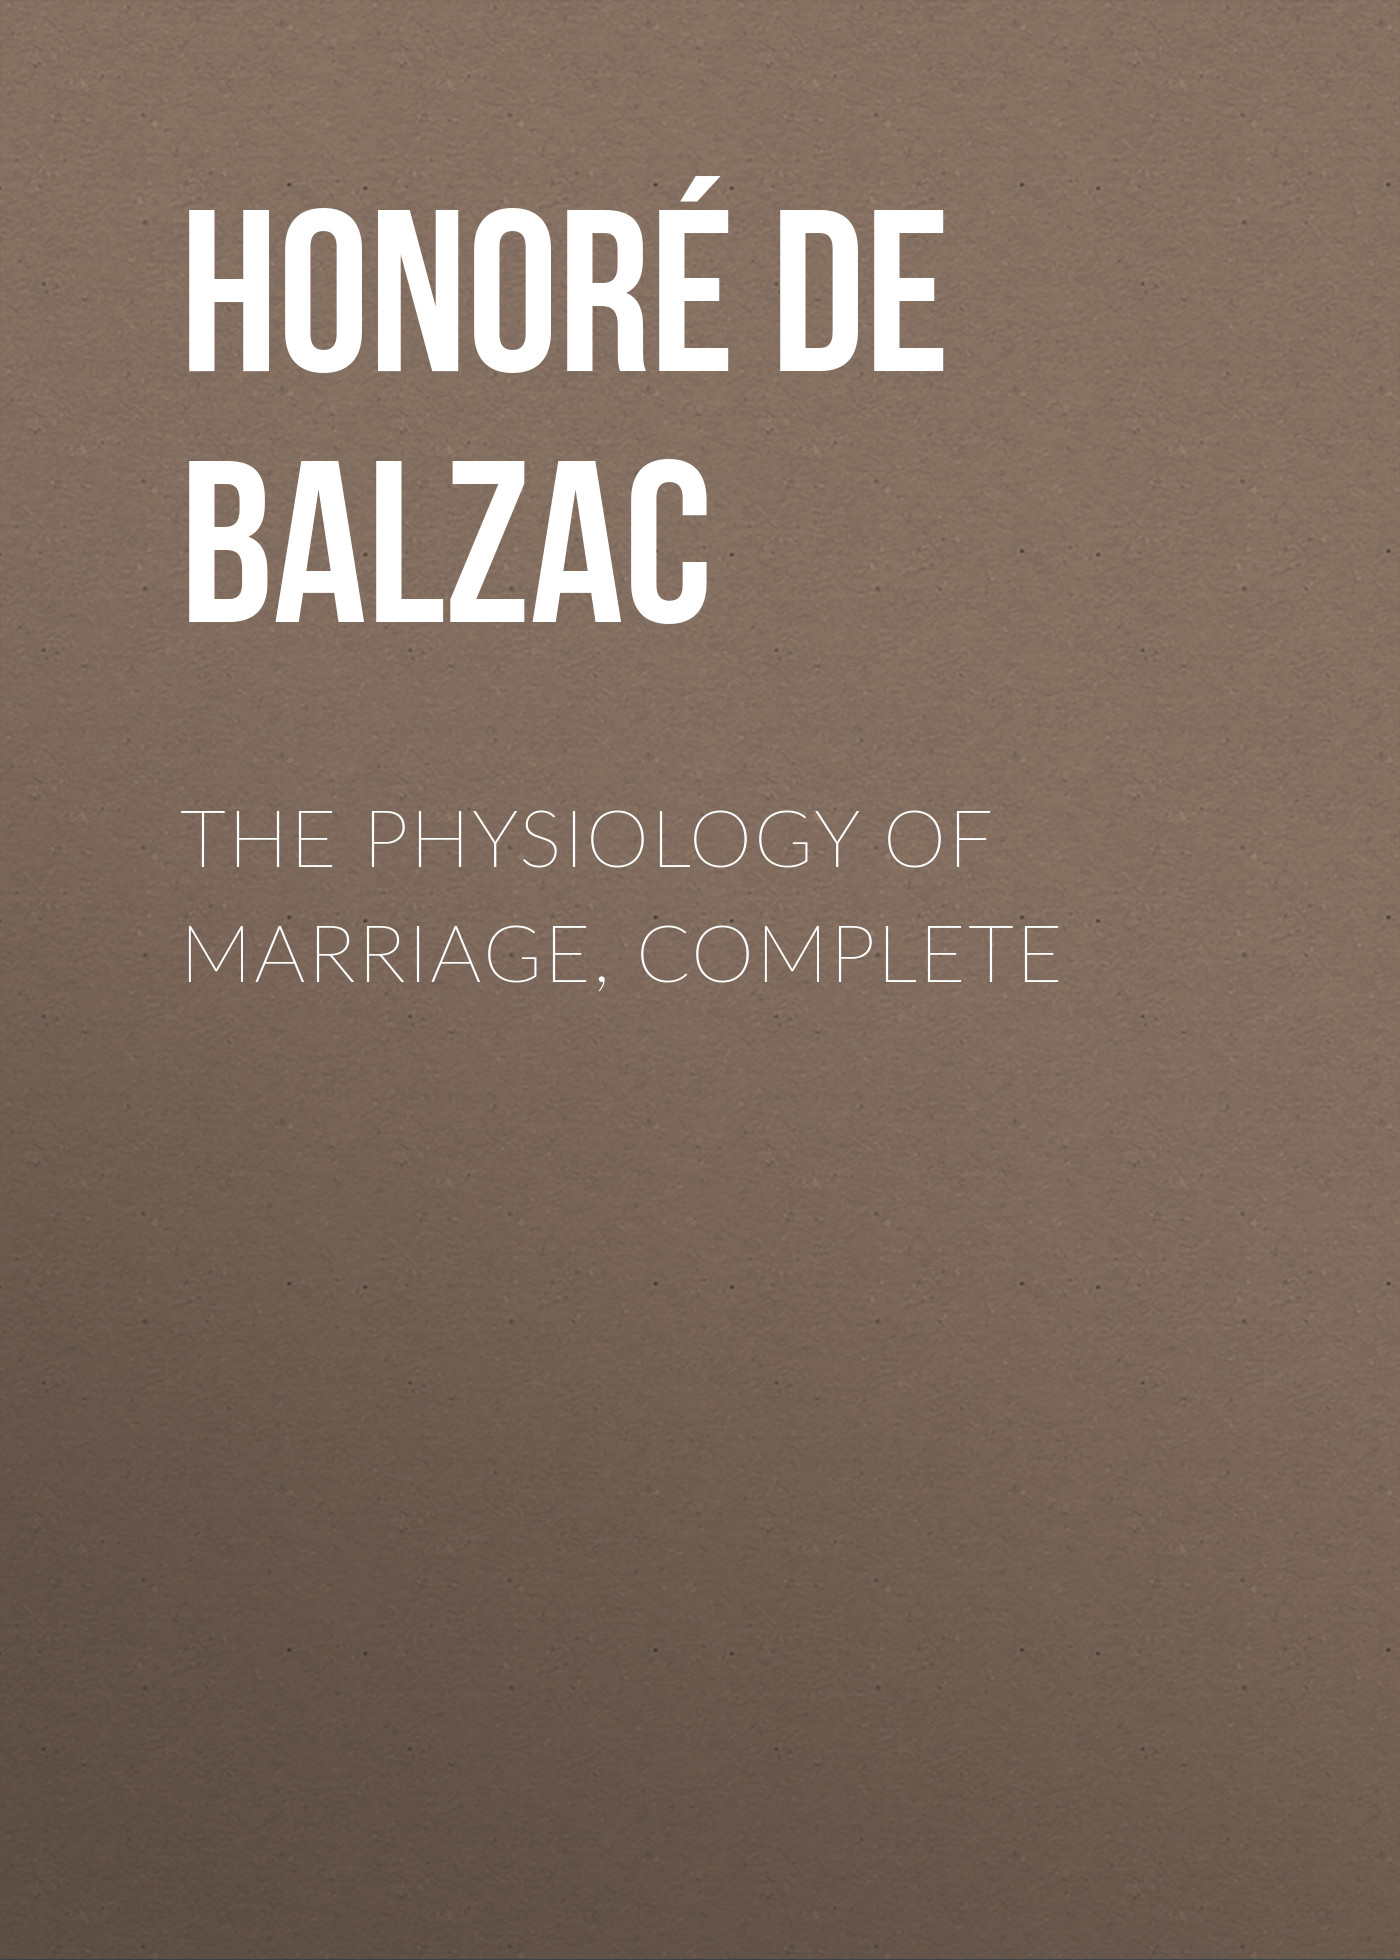 Оноре де Бальзак The Physiology of Marriage, Complete